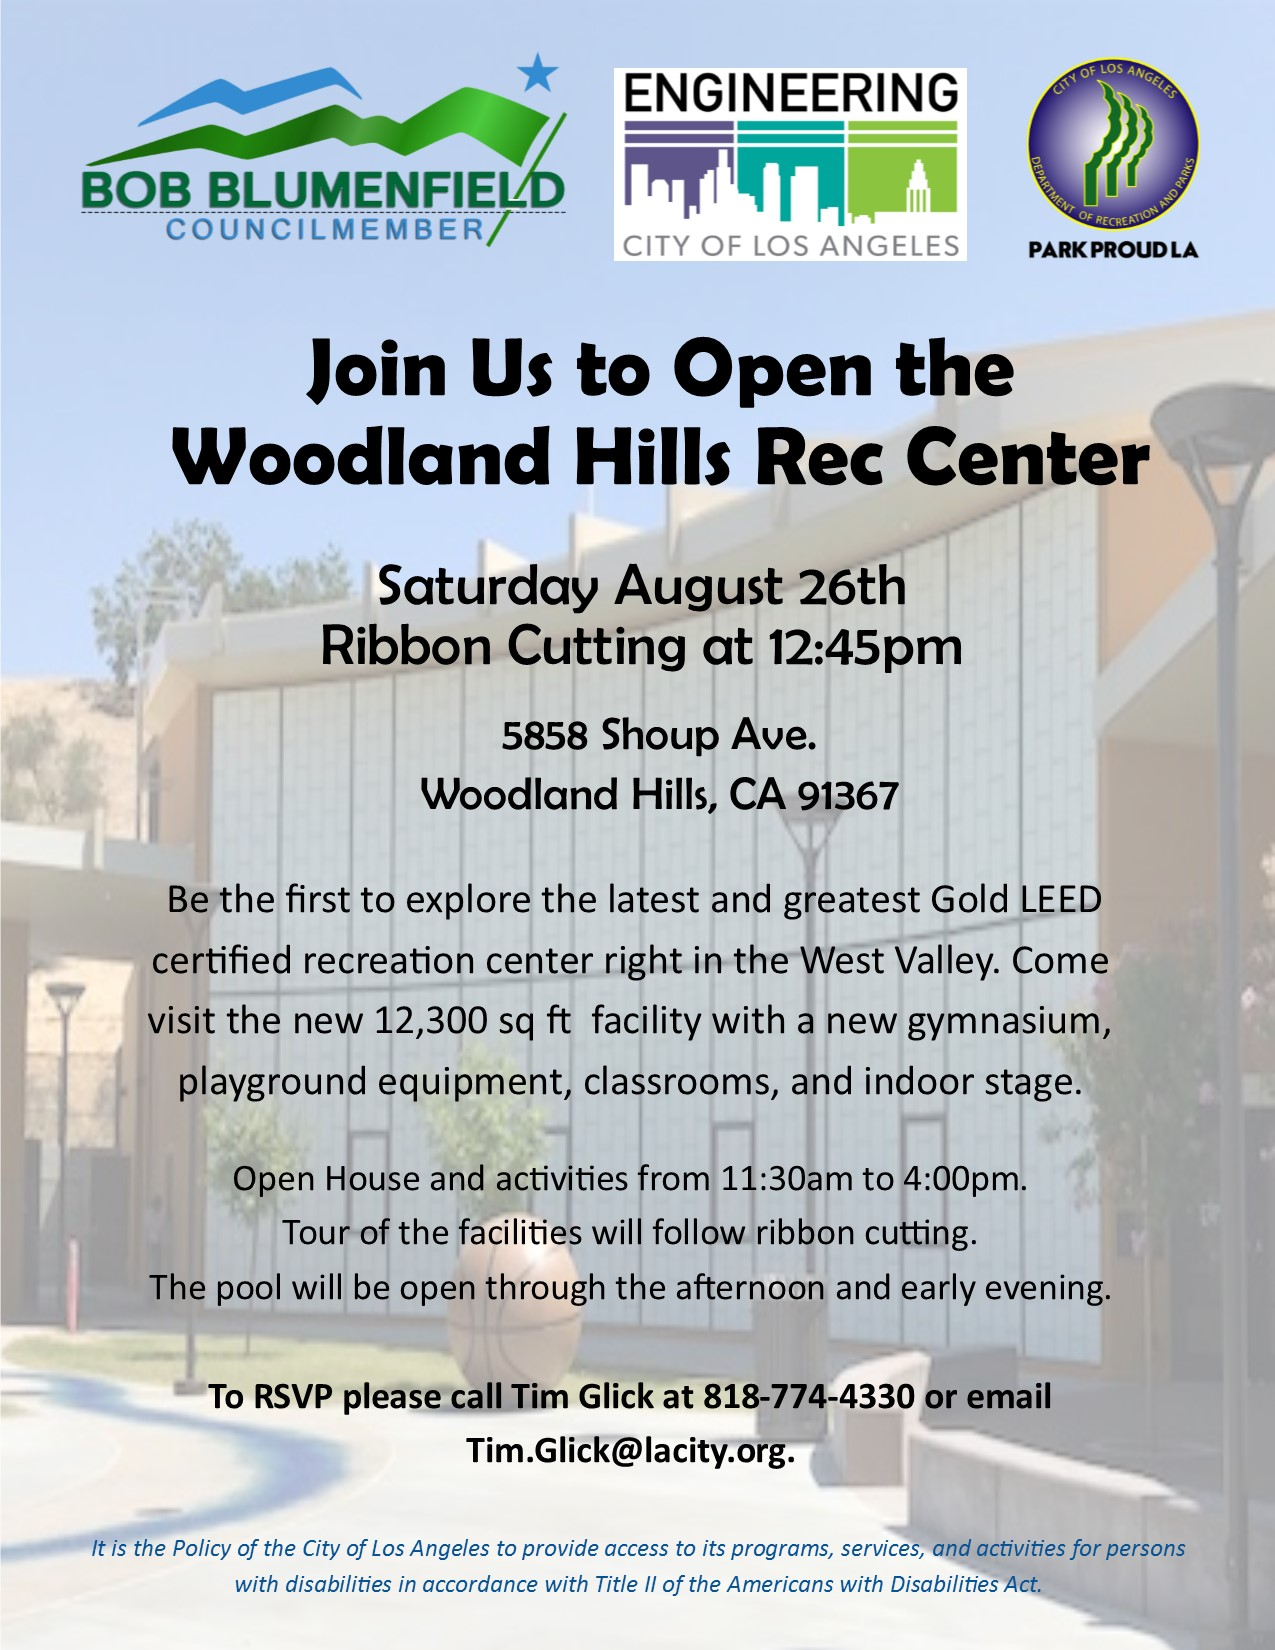 WoHi_Rec_Center_Grand_Opening_Flyer_JF_V3.jpg